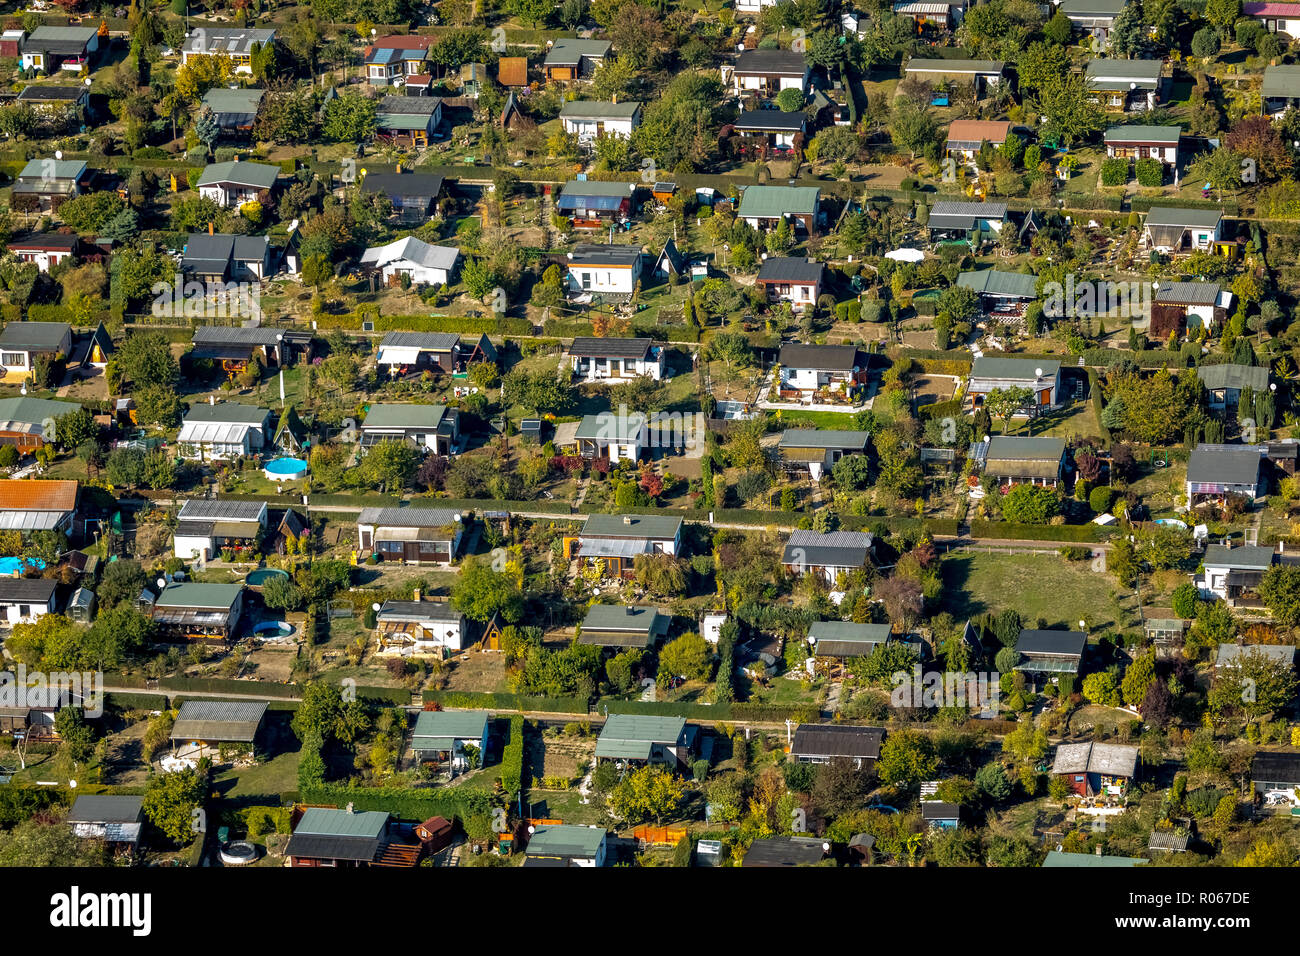 Aerial view, allotment garden, allotment garden, Salbke, Magdeburg, Saxony-Anhalt, Germany, DEU, Europe, aerial view, birds-eyes view, aerial photogra - Stock Image